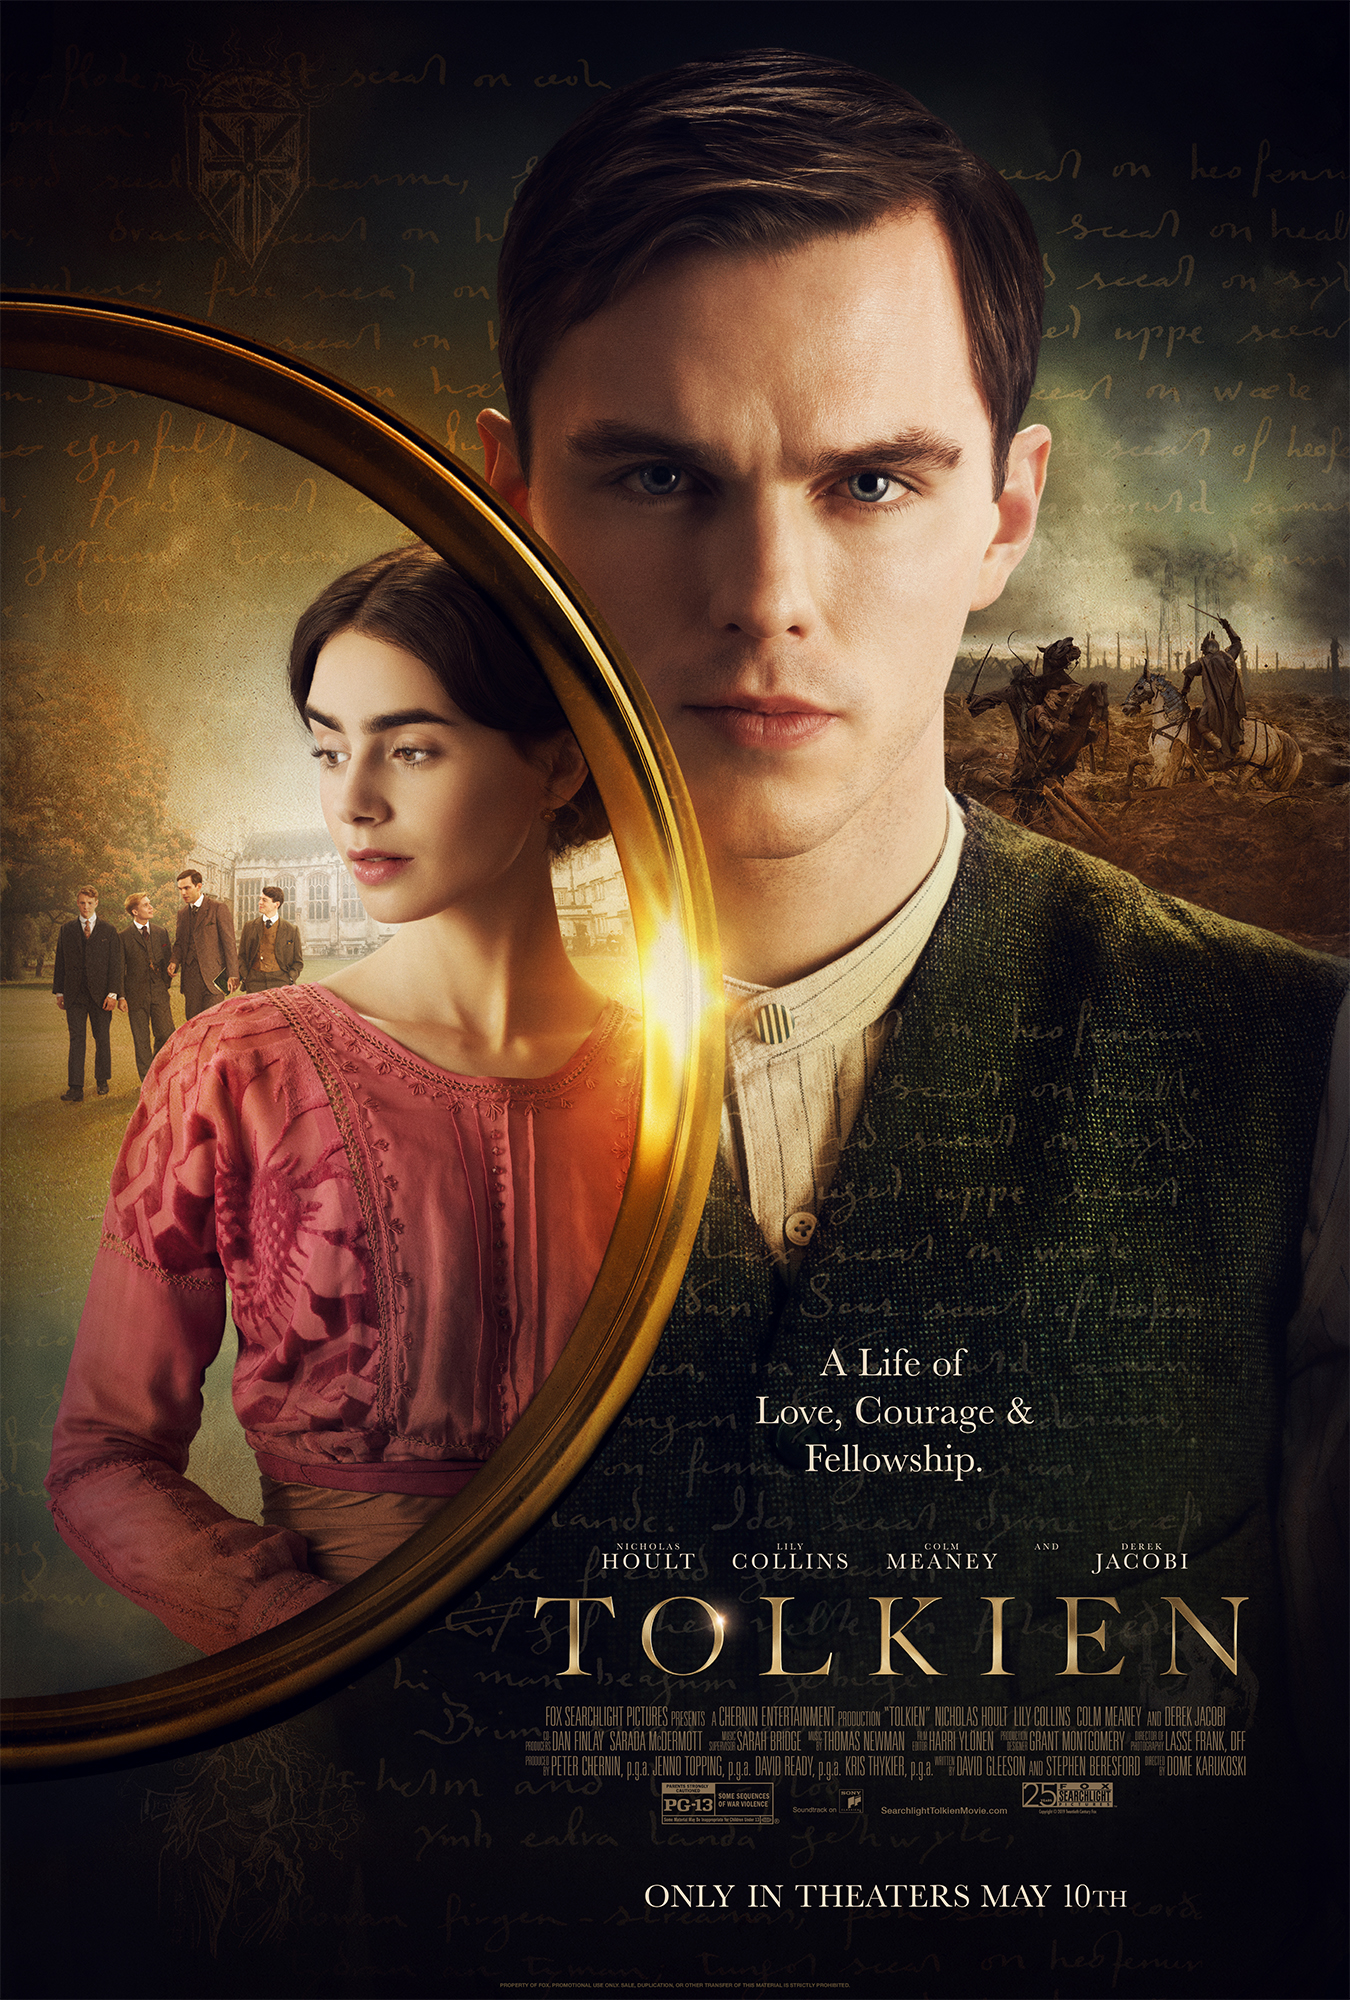 Tolkien — More Than a Story